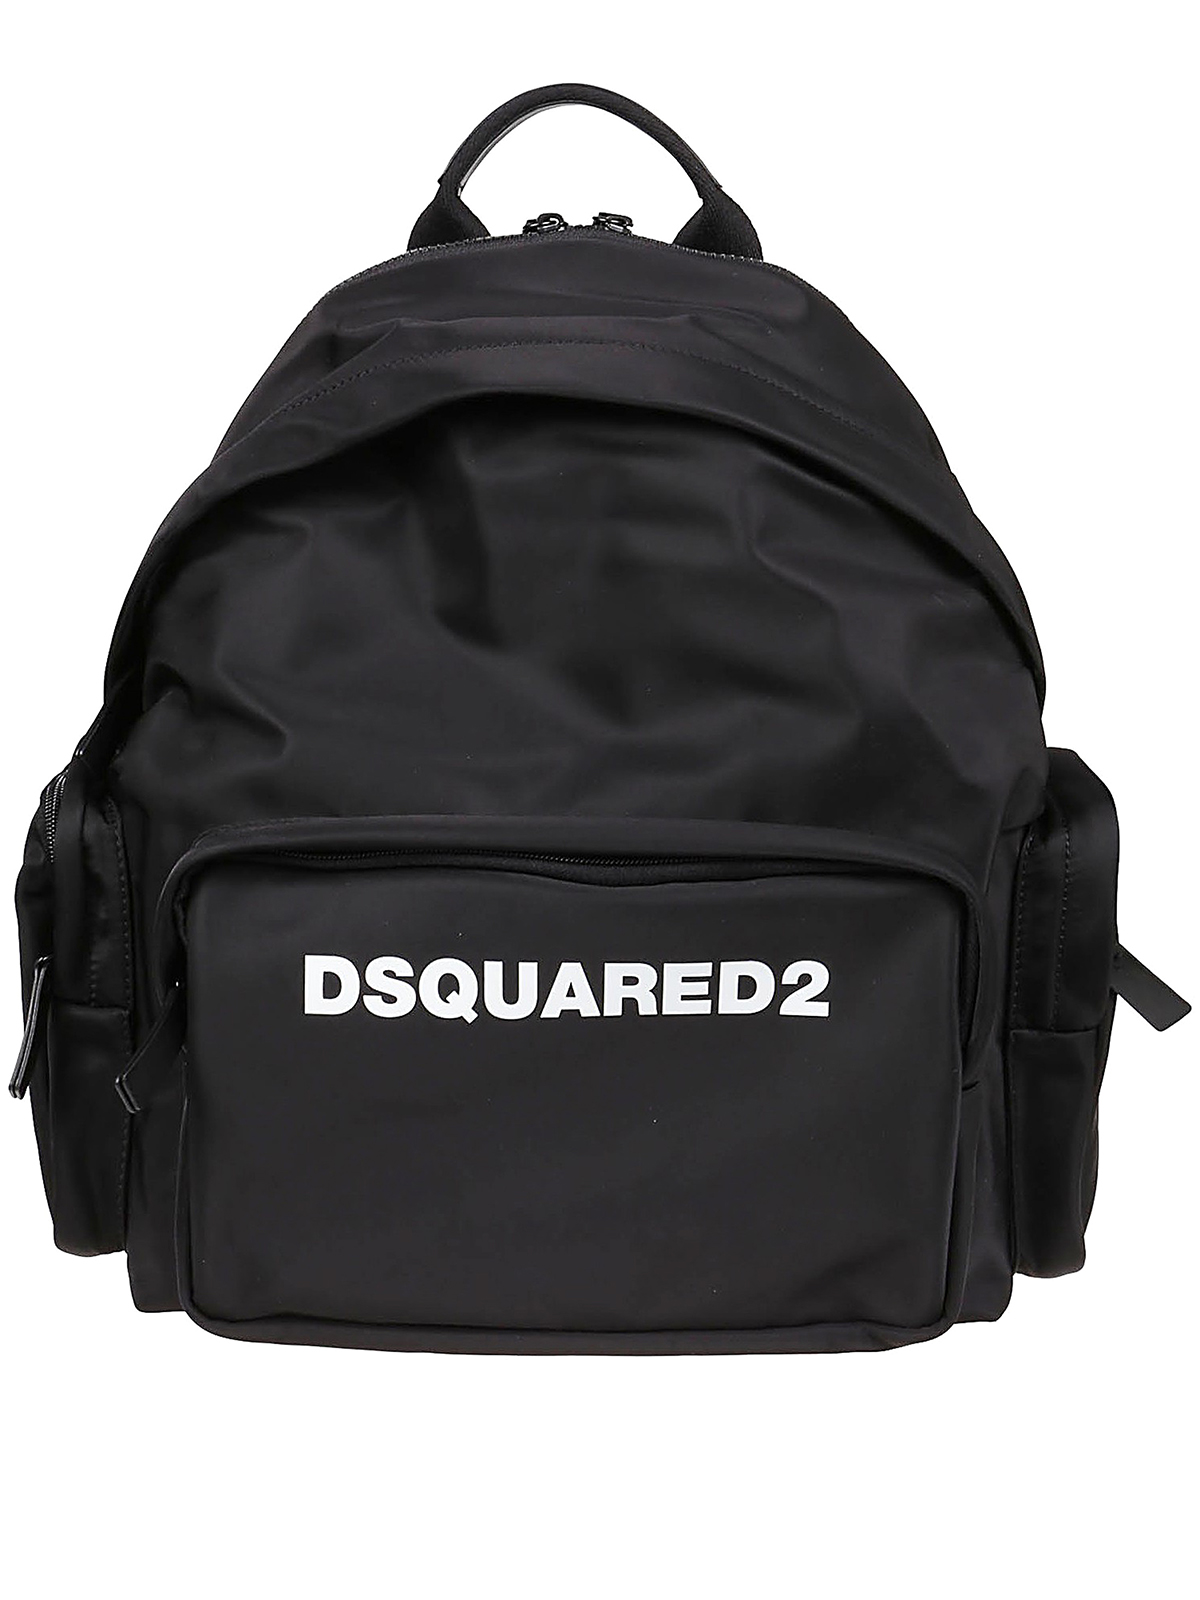 Dsquared2 Leathers LOGO PRINT BACKPACK